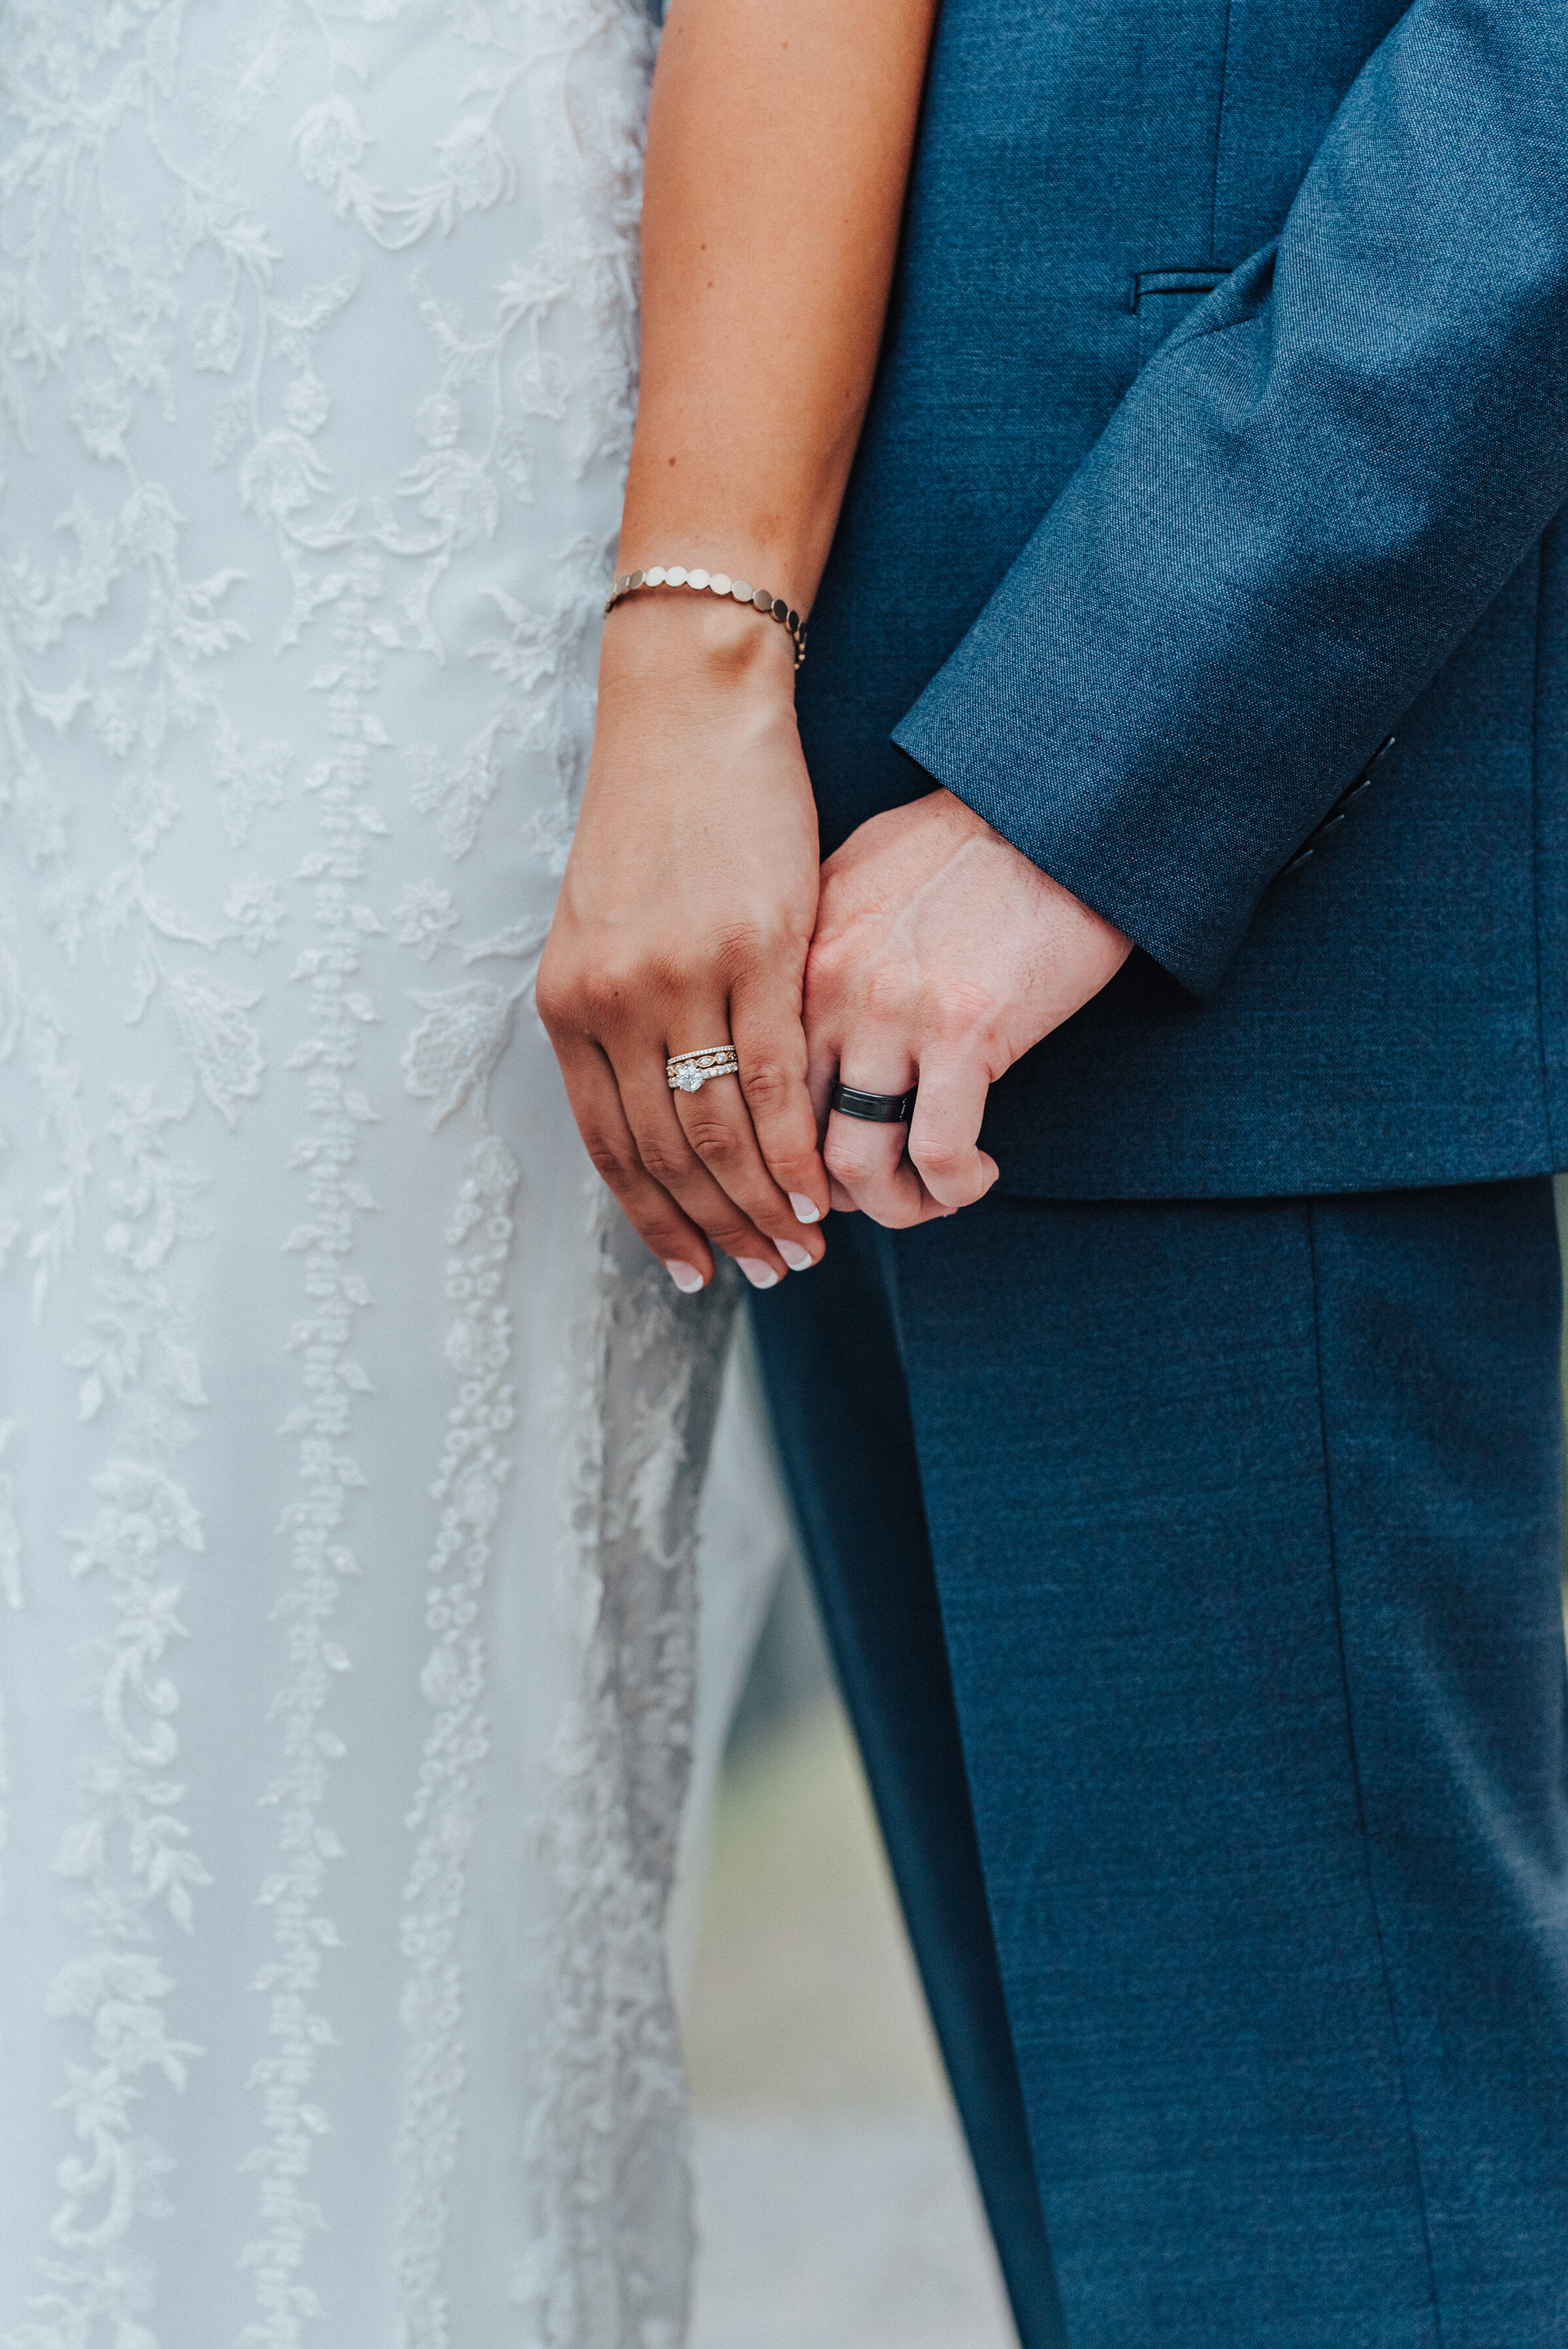 A close-up of the bride and groom's hands touching while showing off their gorgeous rings. Almost interlocked hands navy blue suit french tip nails close-up shot in American Fork floral dress design dark ring for the groom bride in front of groom #husbandandwife #younglove #tibbleforkreservoir #utahwedding #americanforkcanyon #coupleshoot #formals #weddingphotography #couplesgoals #couplephotography #weddingphotographer #couplesphotography #groom #bride #rings